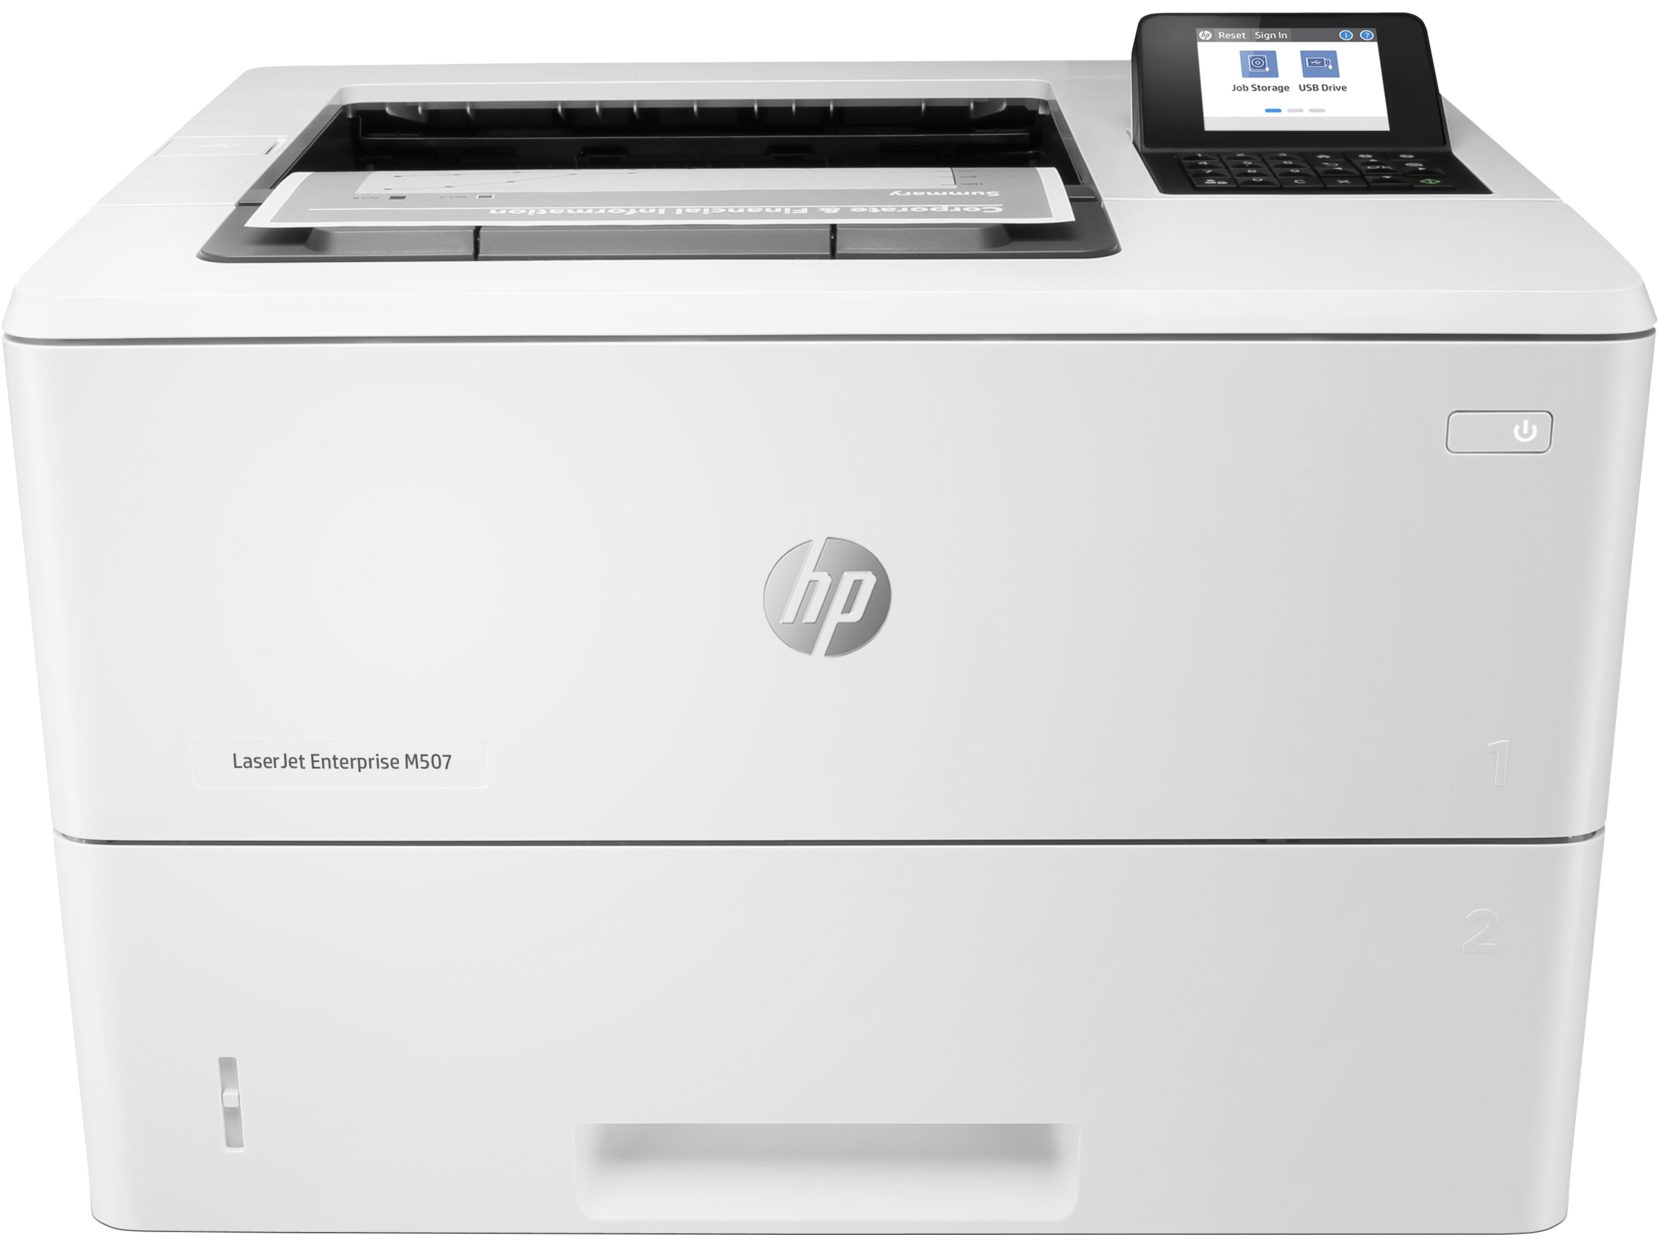 Máy in HP LaserJet Enterprise M507dn (1PV87A) Print,  Network,  Duplex